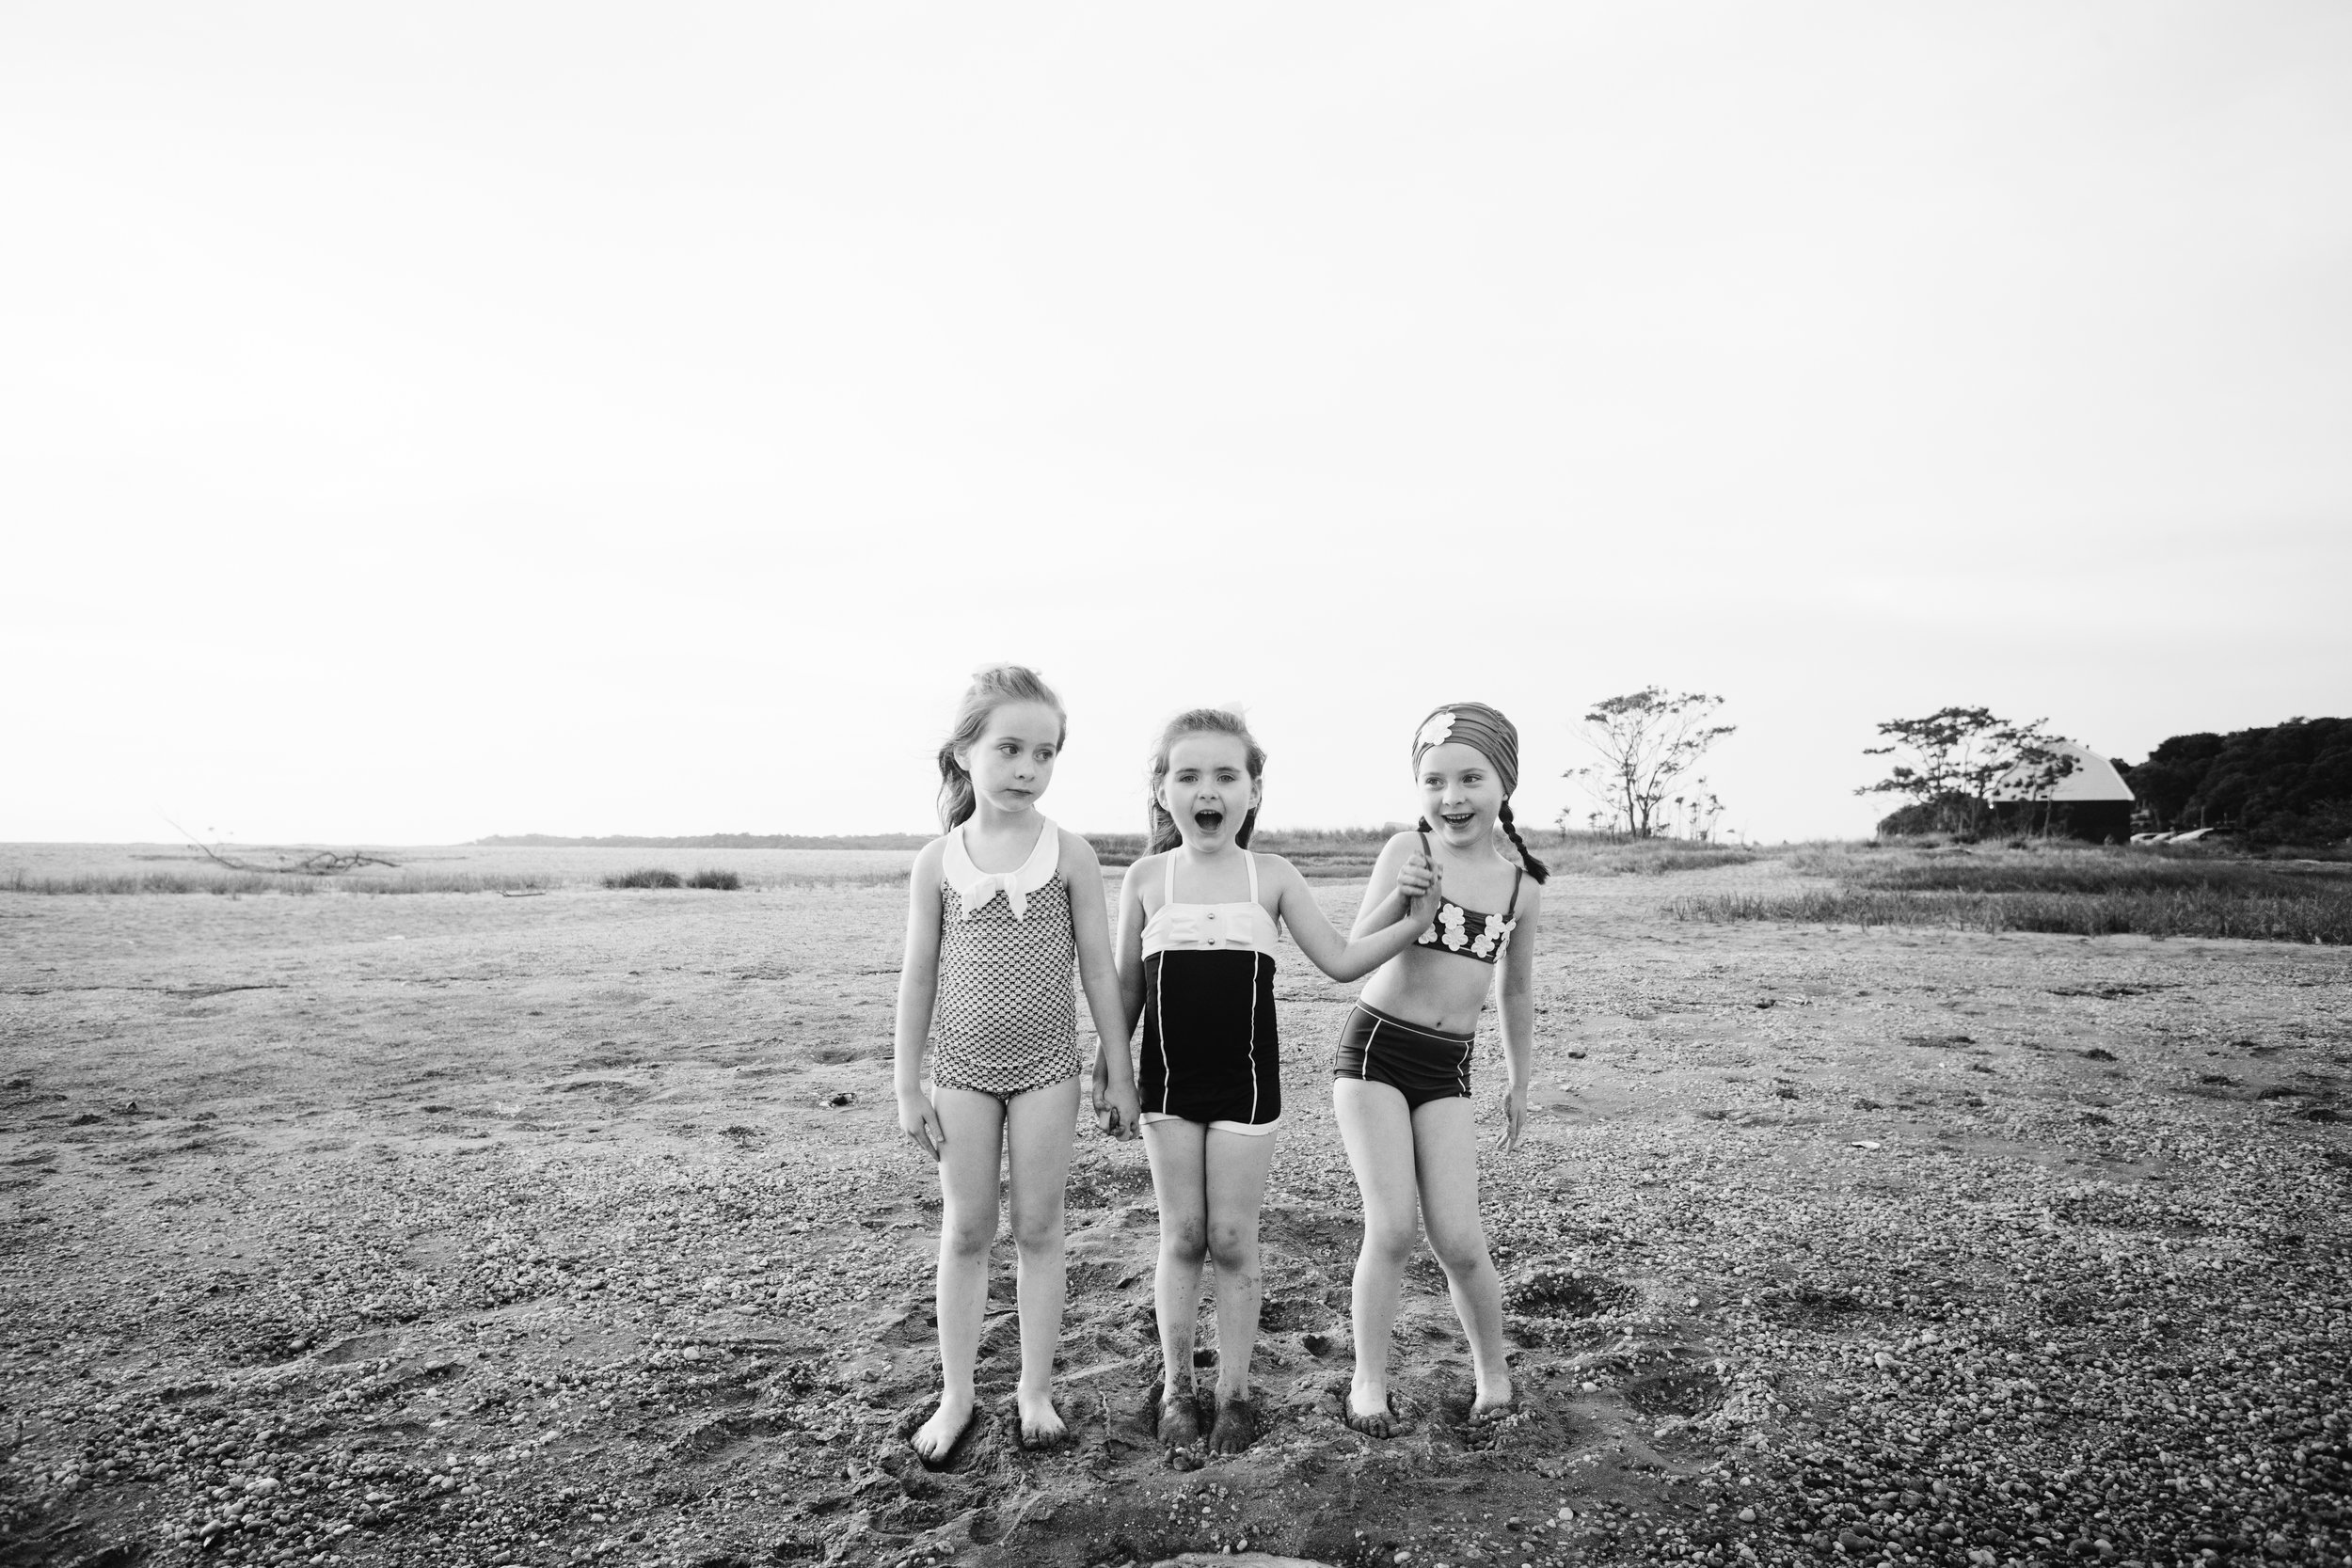 sisters beach photo session | Long Island Centerport | Jennifer Tippett